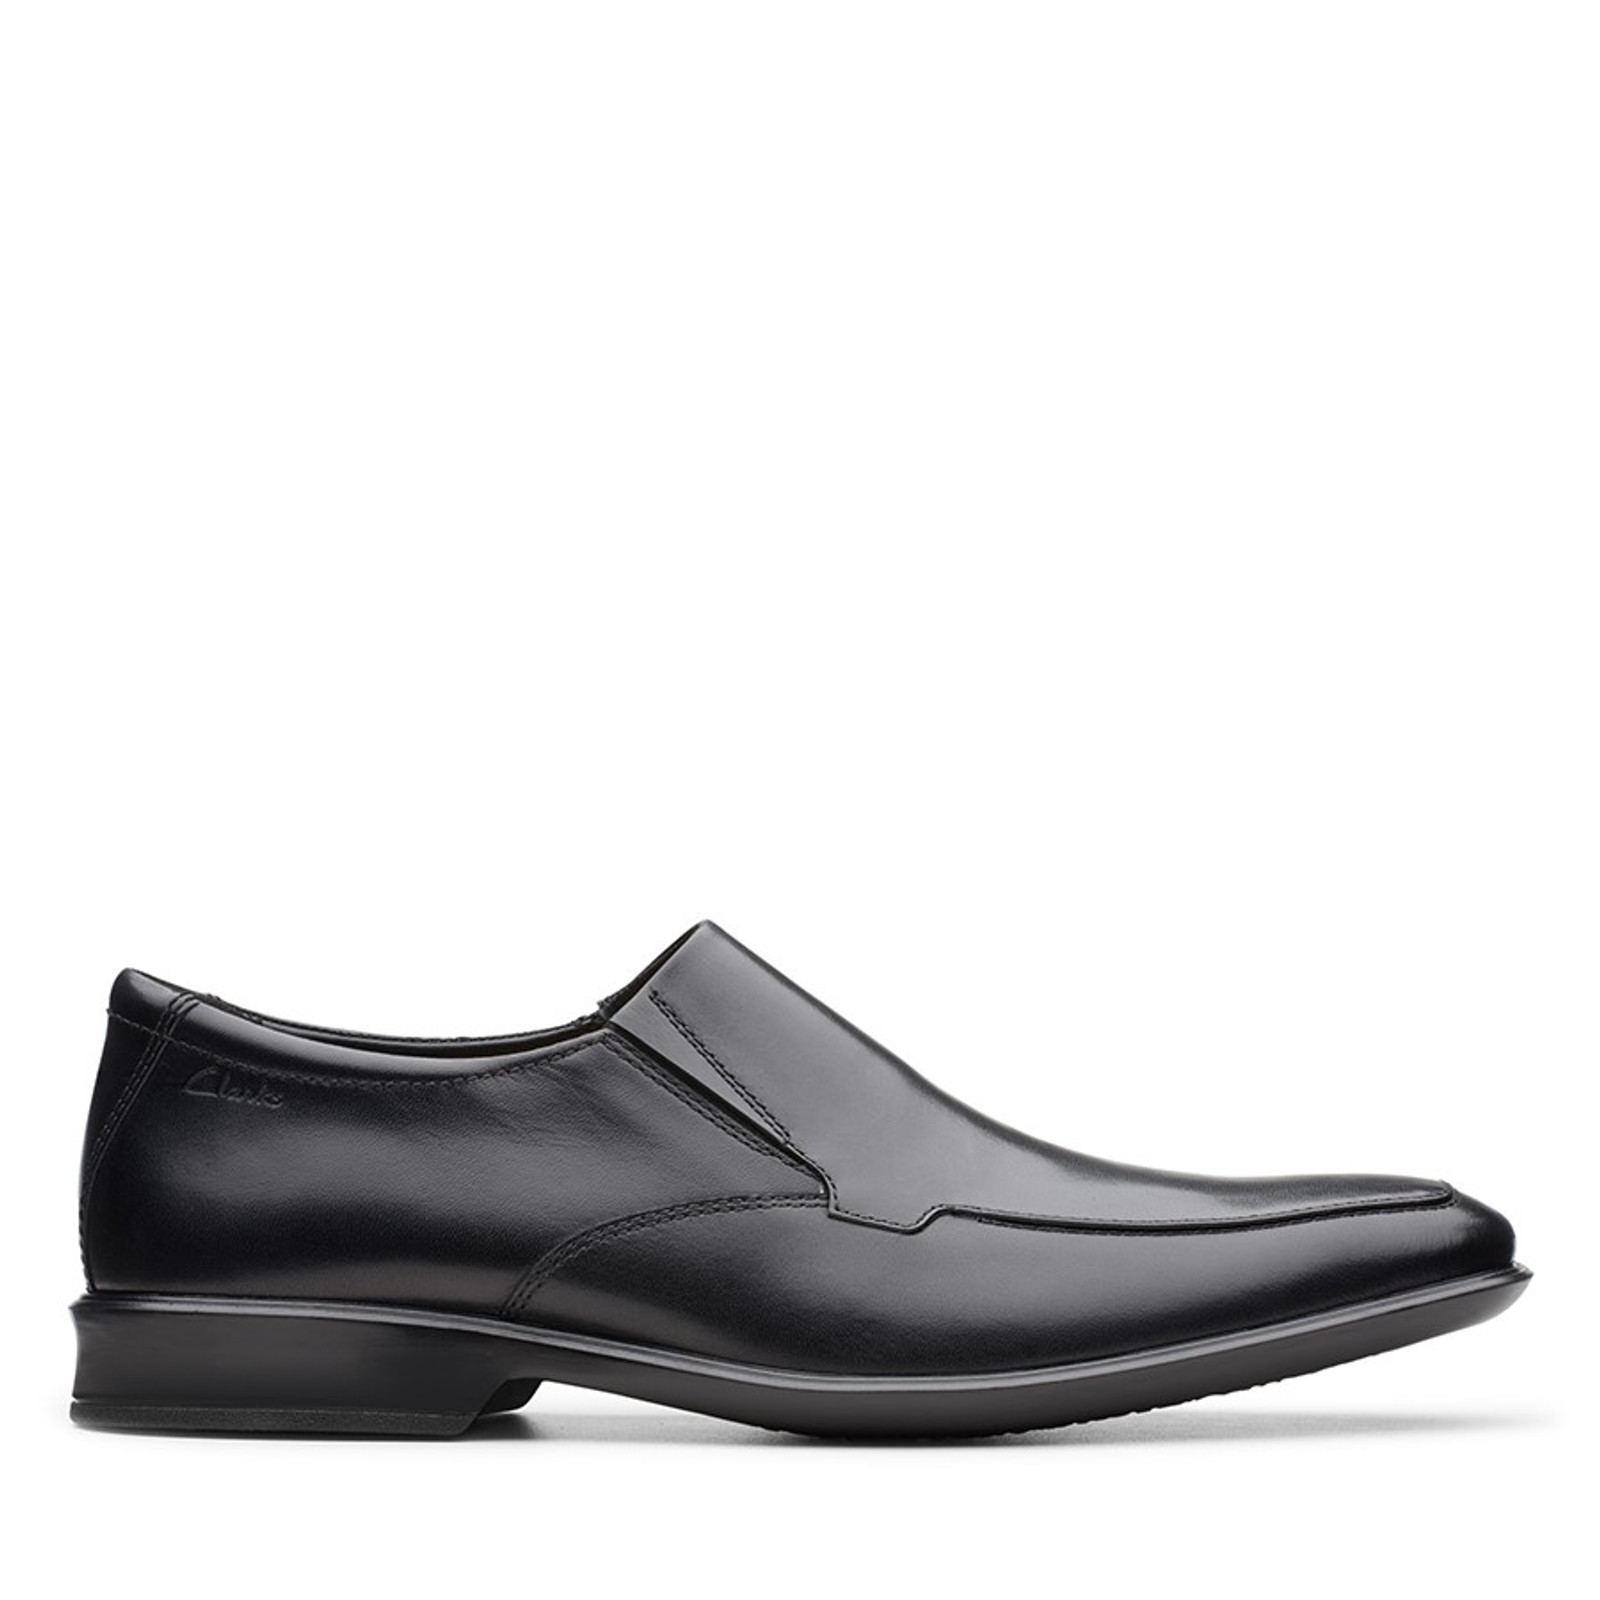 Clarks Mens BENSLEY STEP Black Leather